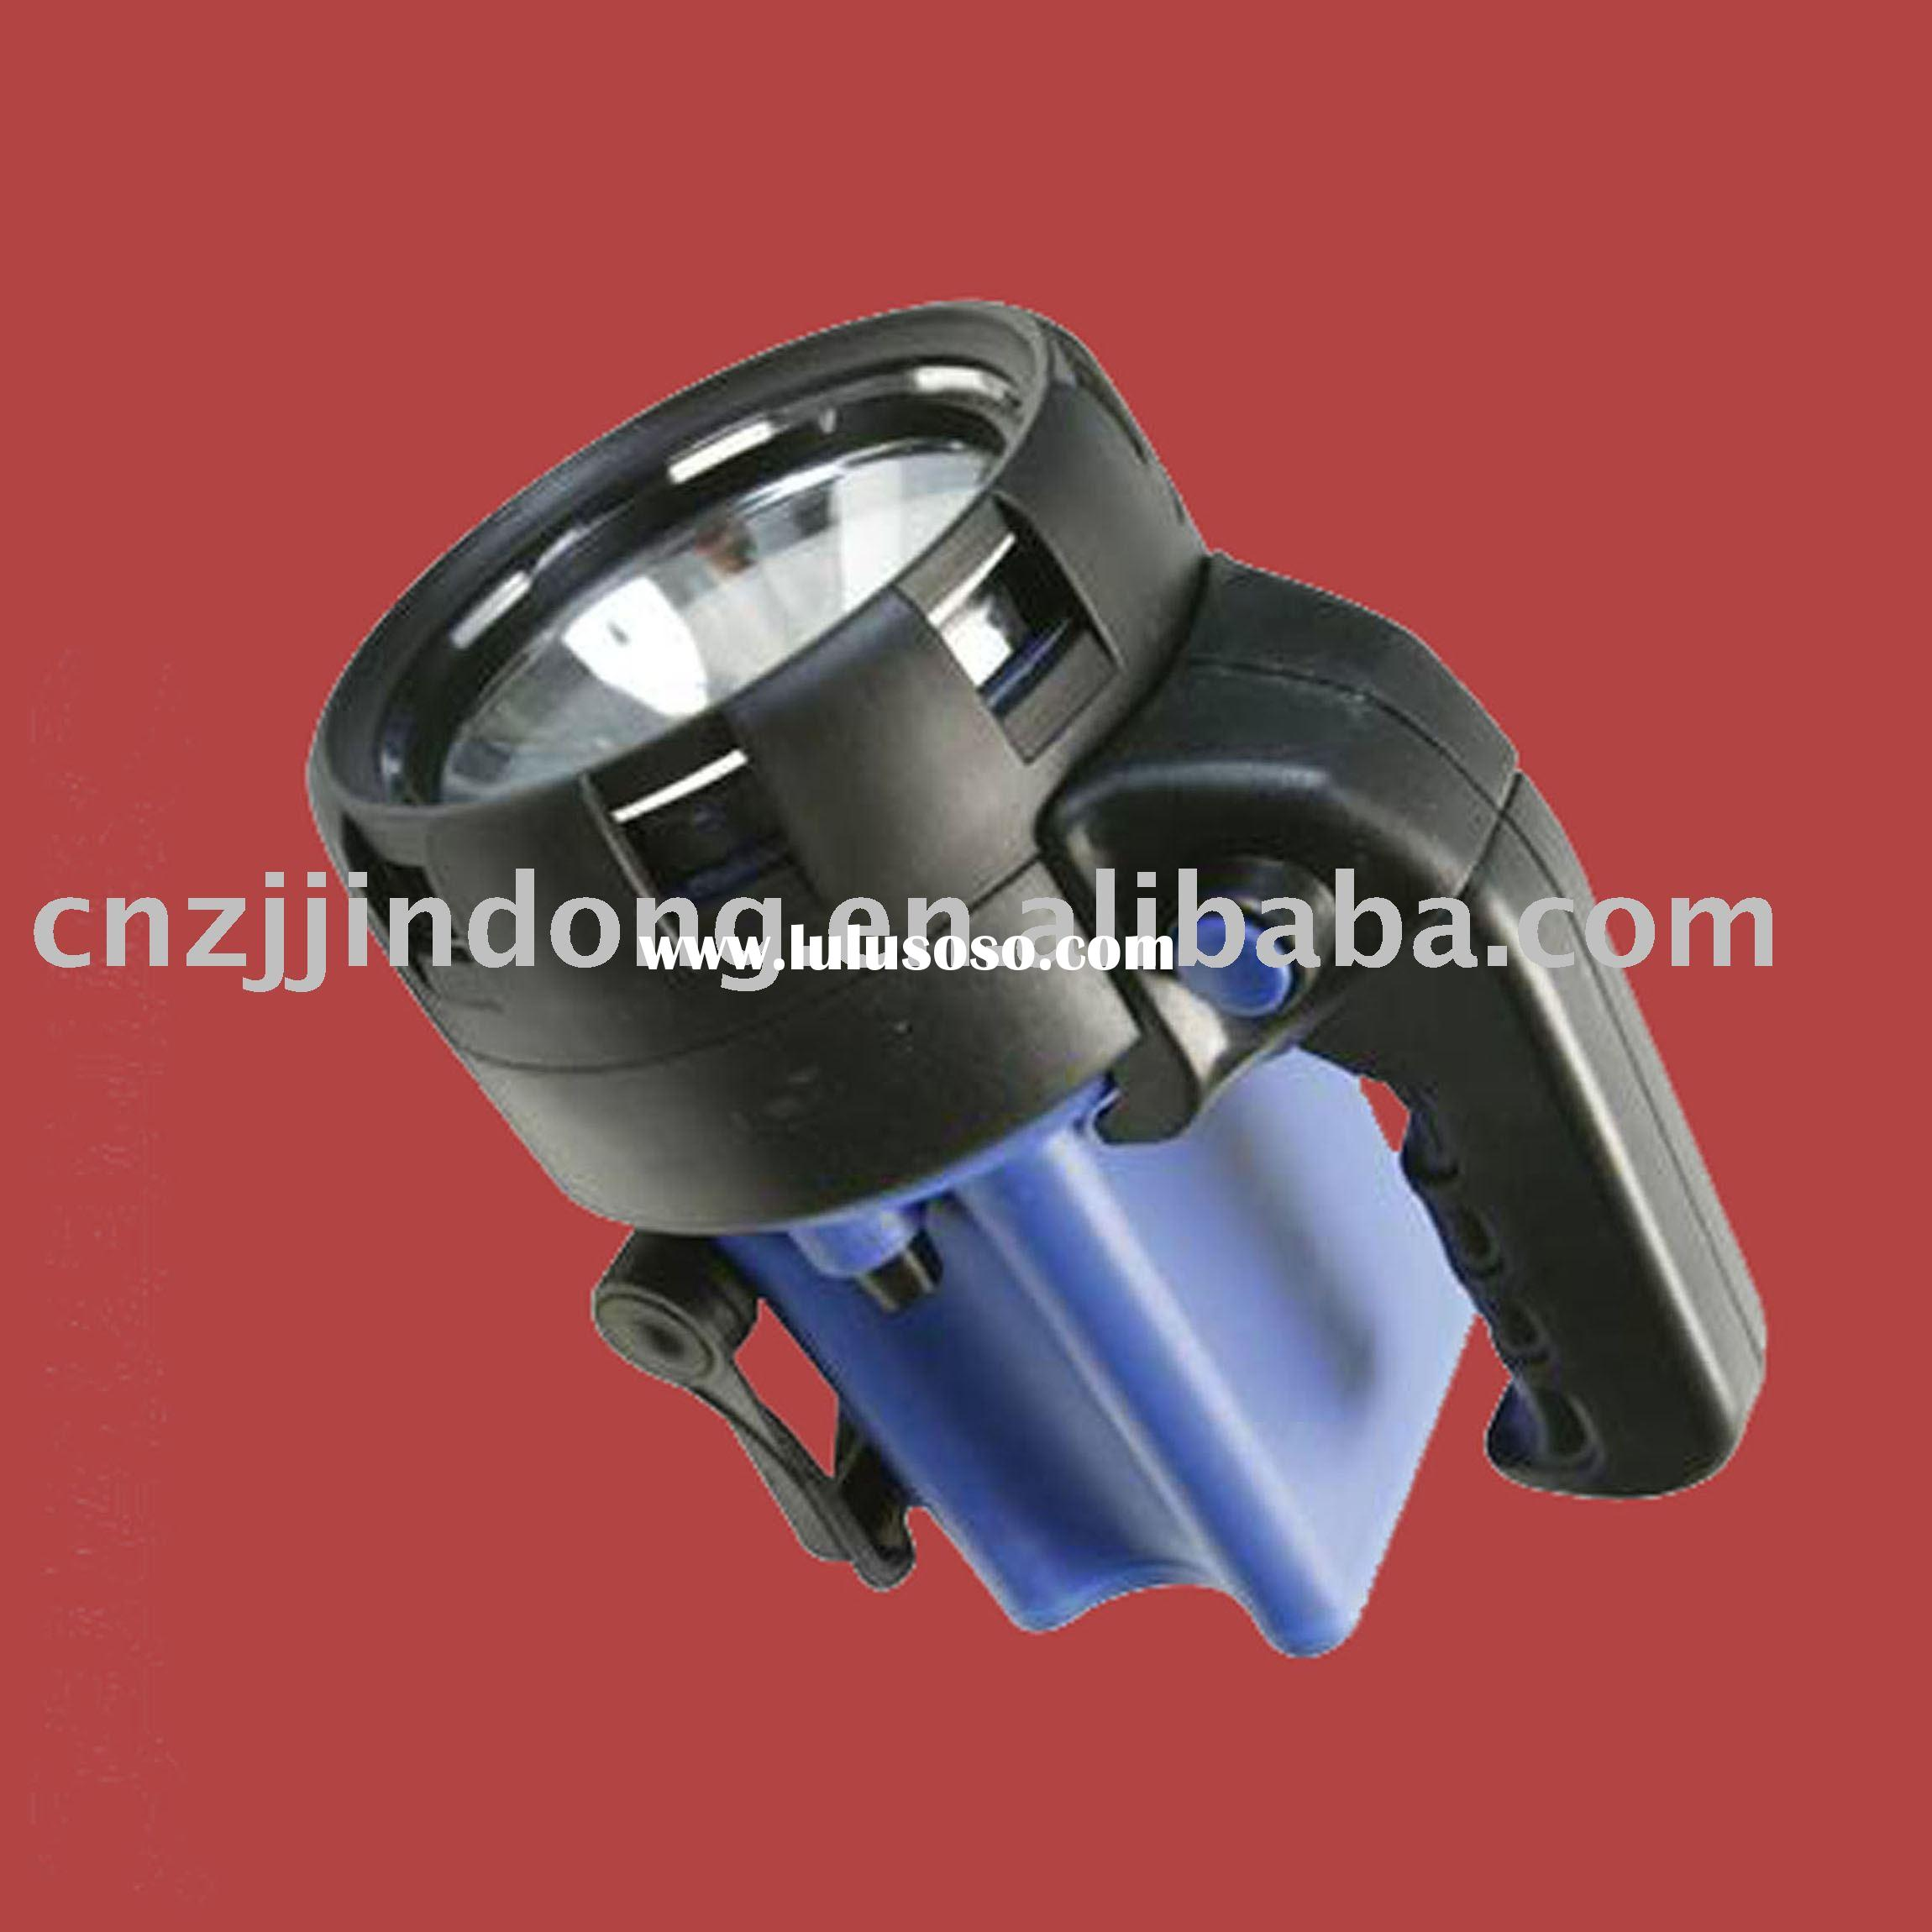 rechargeable torch;rechargeable flashlight;led rechargeable torch;